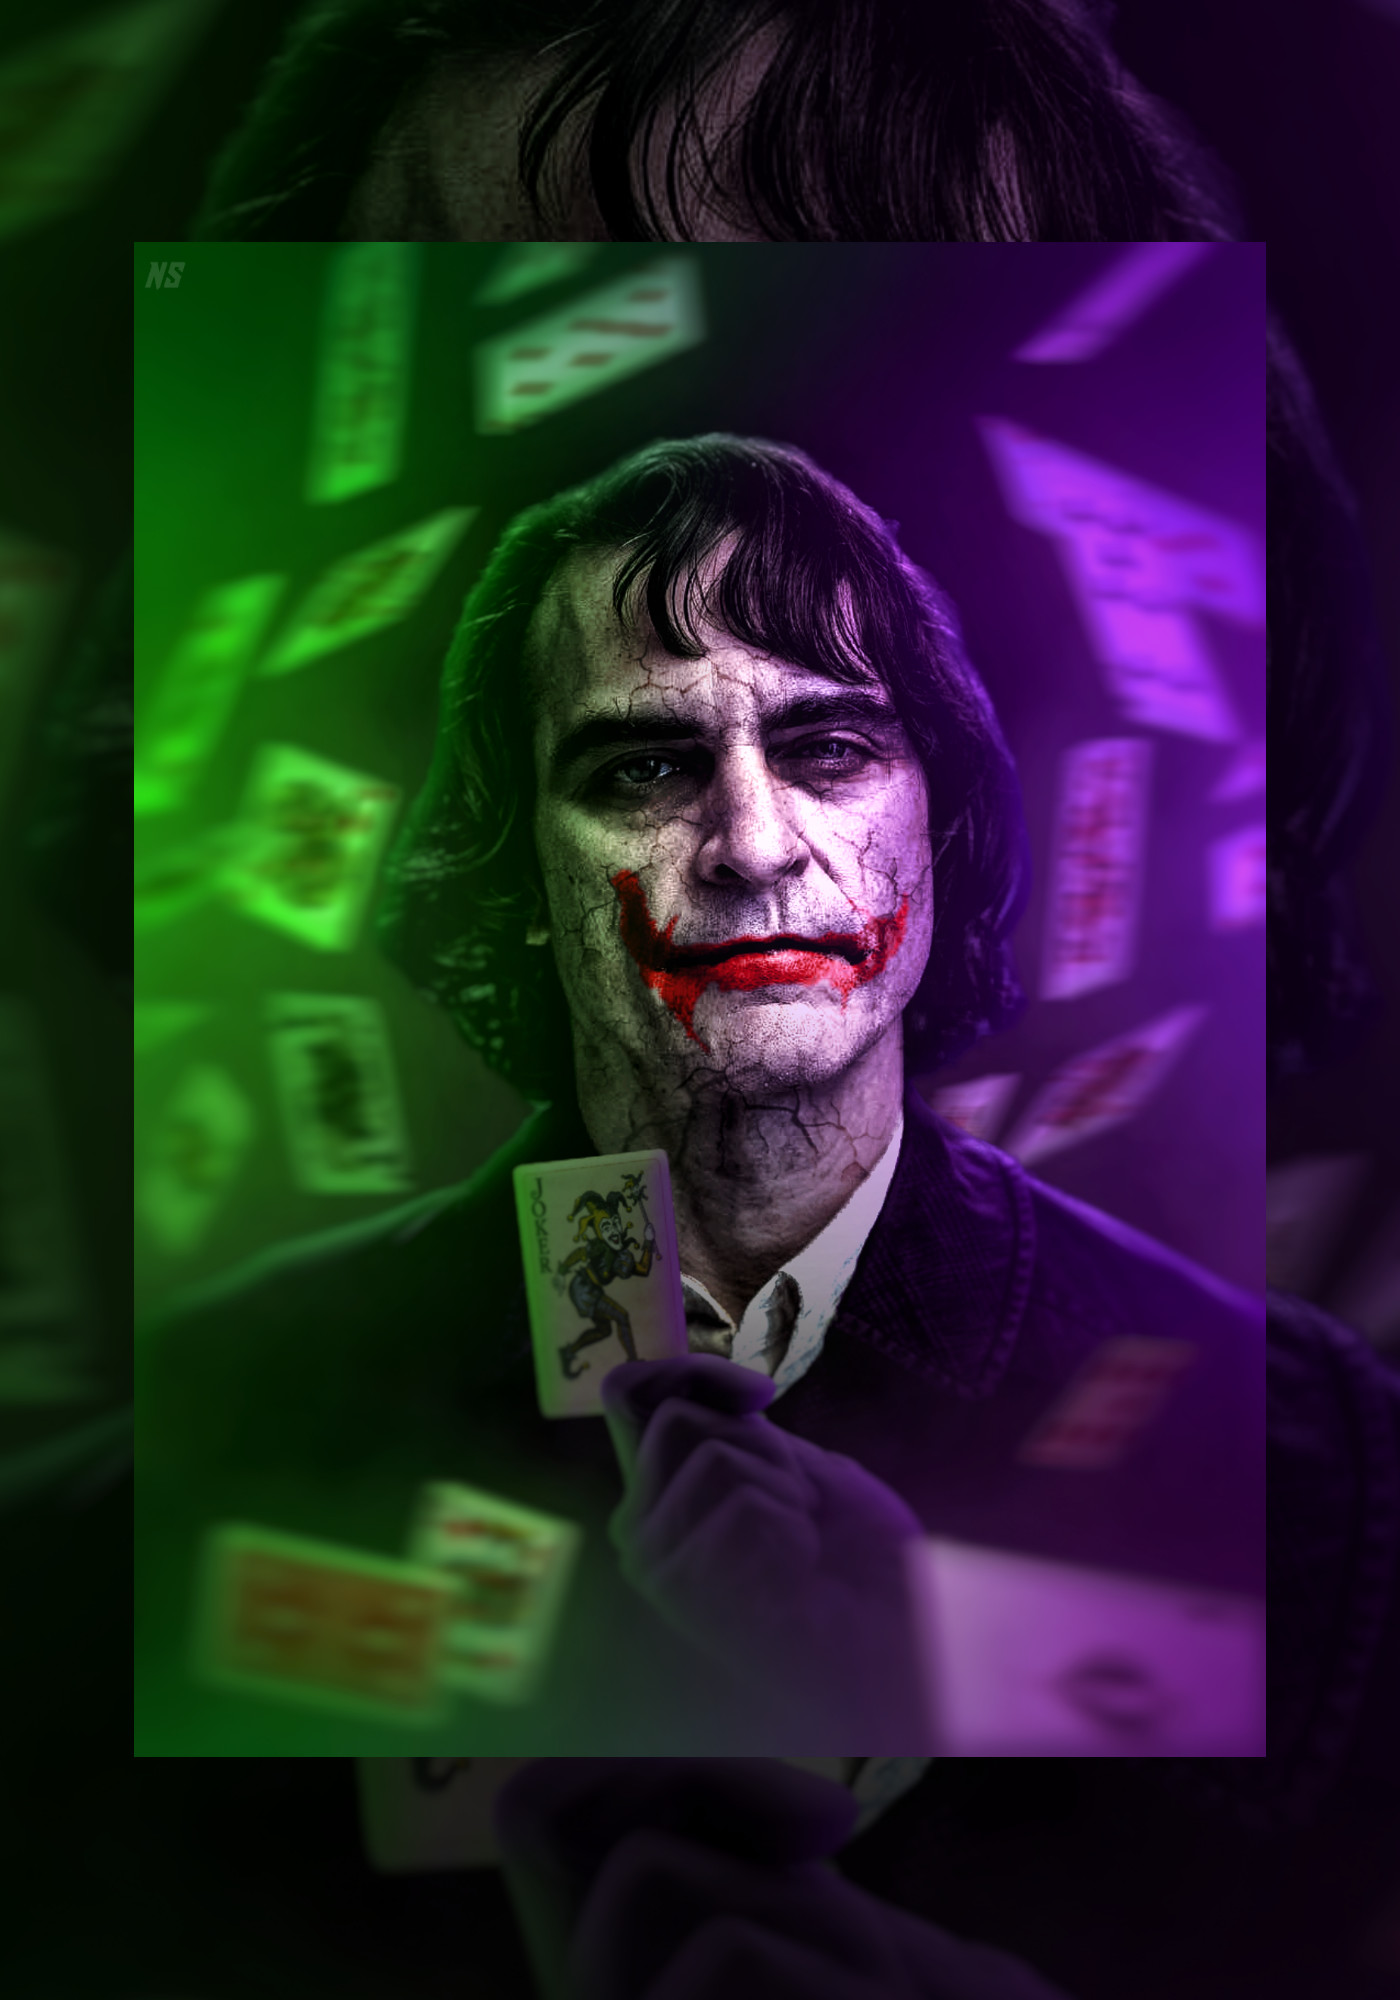 Joker Movie Poster 2019